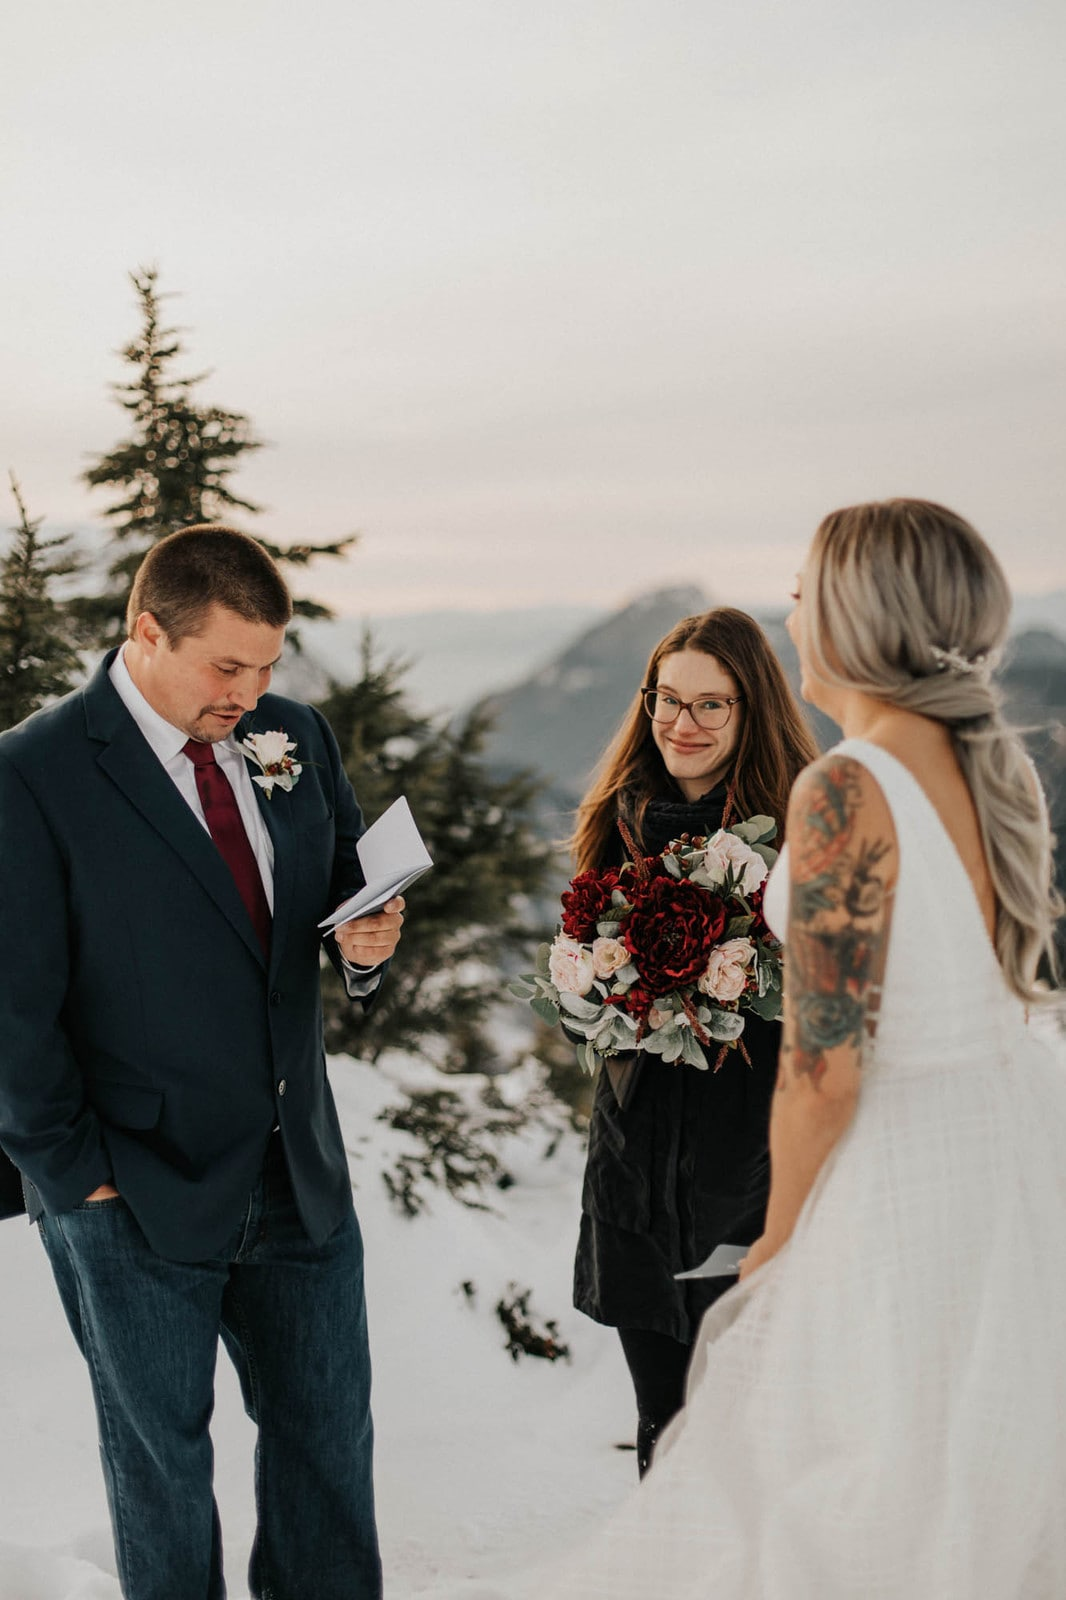 groom reading his vows at ceremony